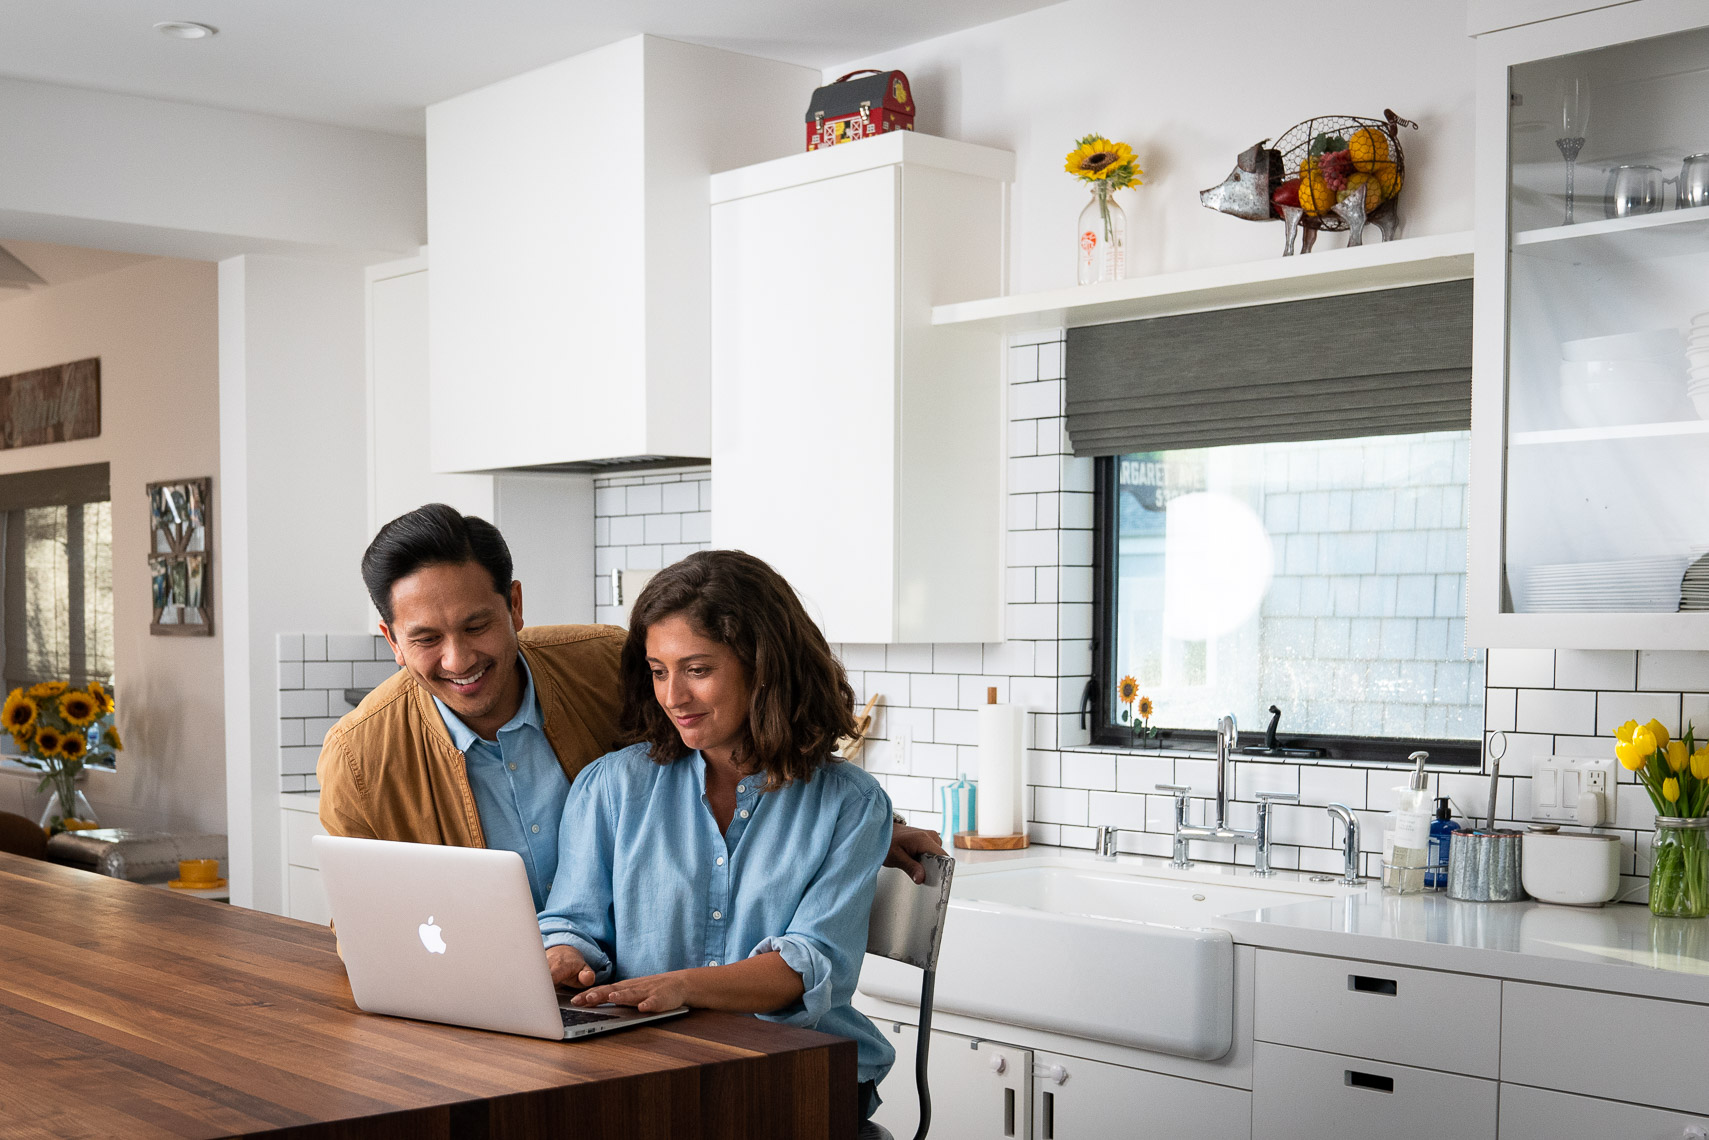 Avast - Couple Working on Laptop in Kitchen